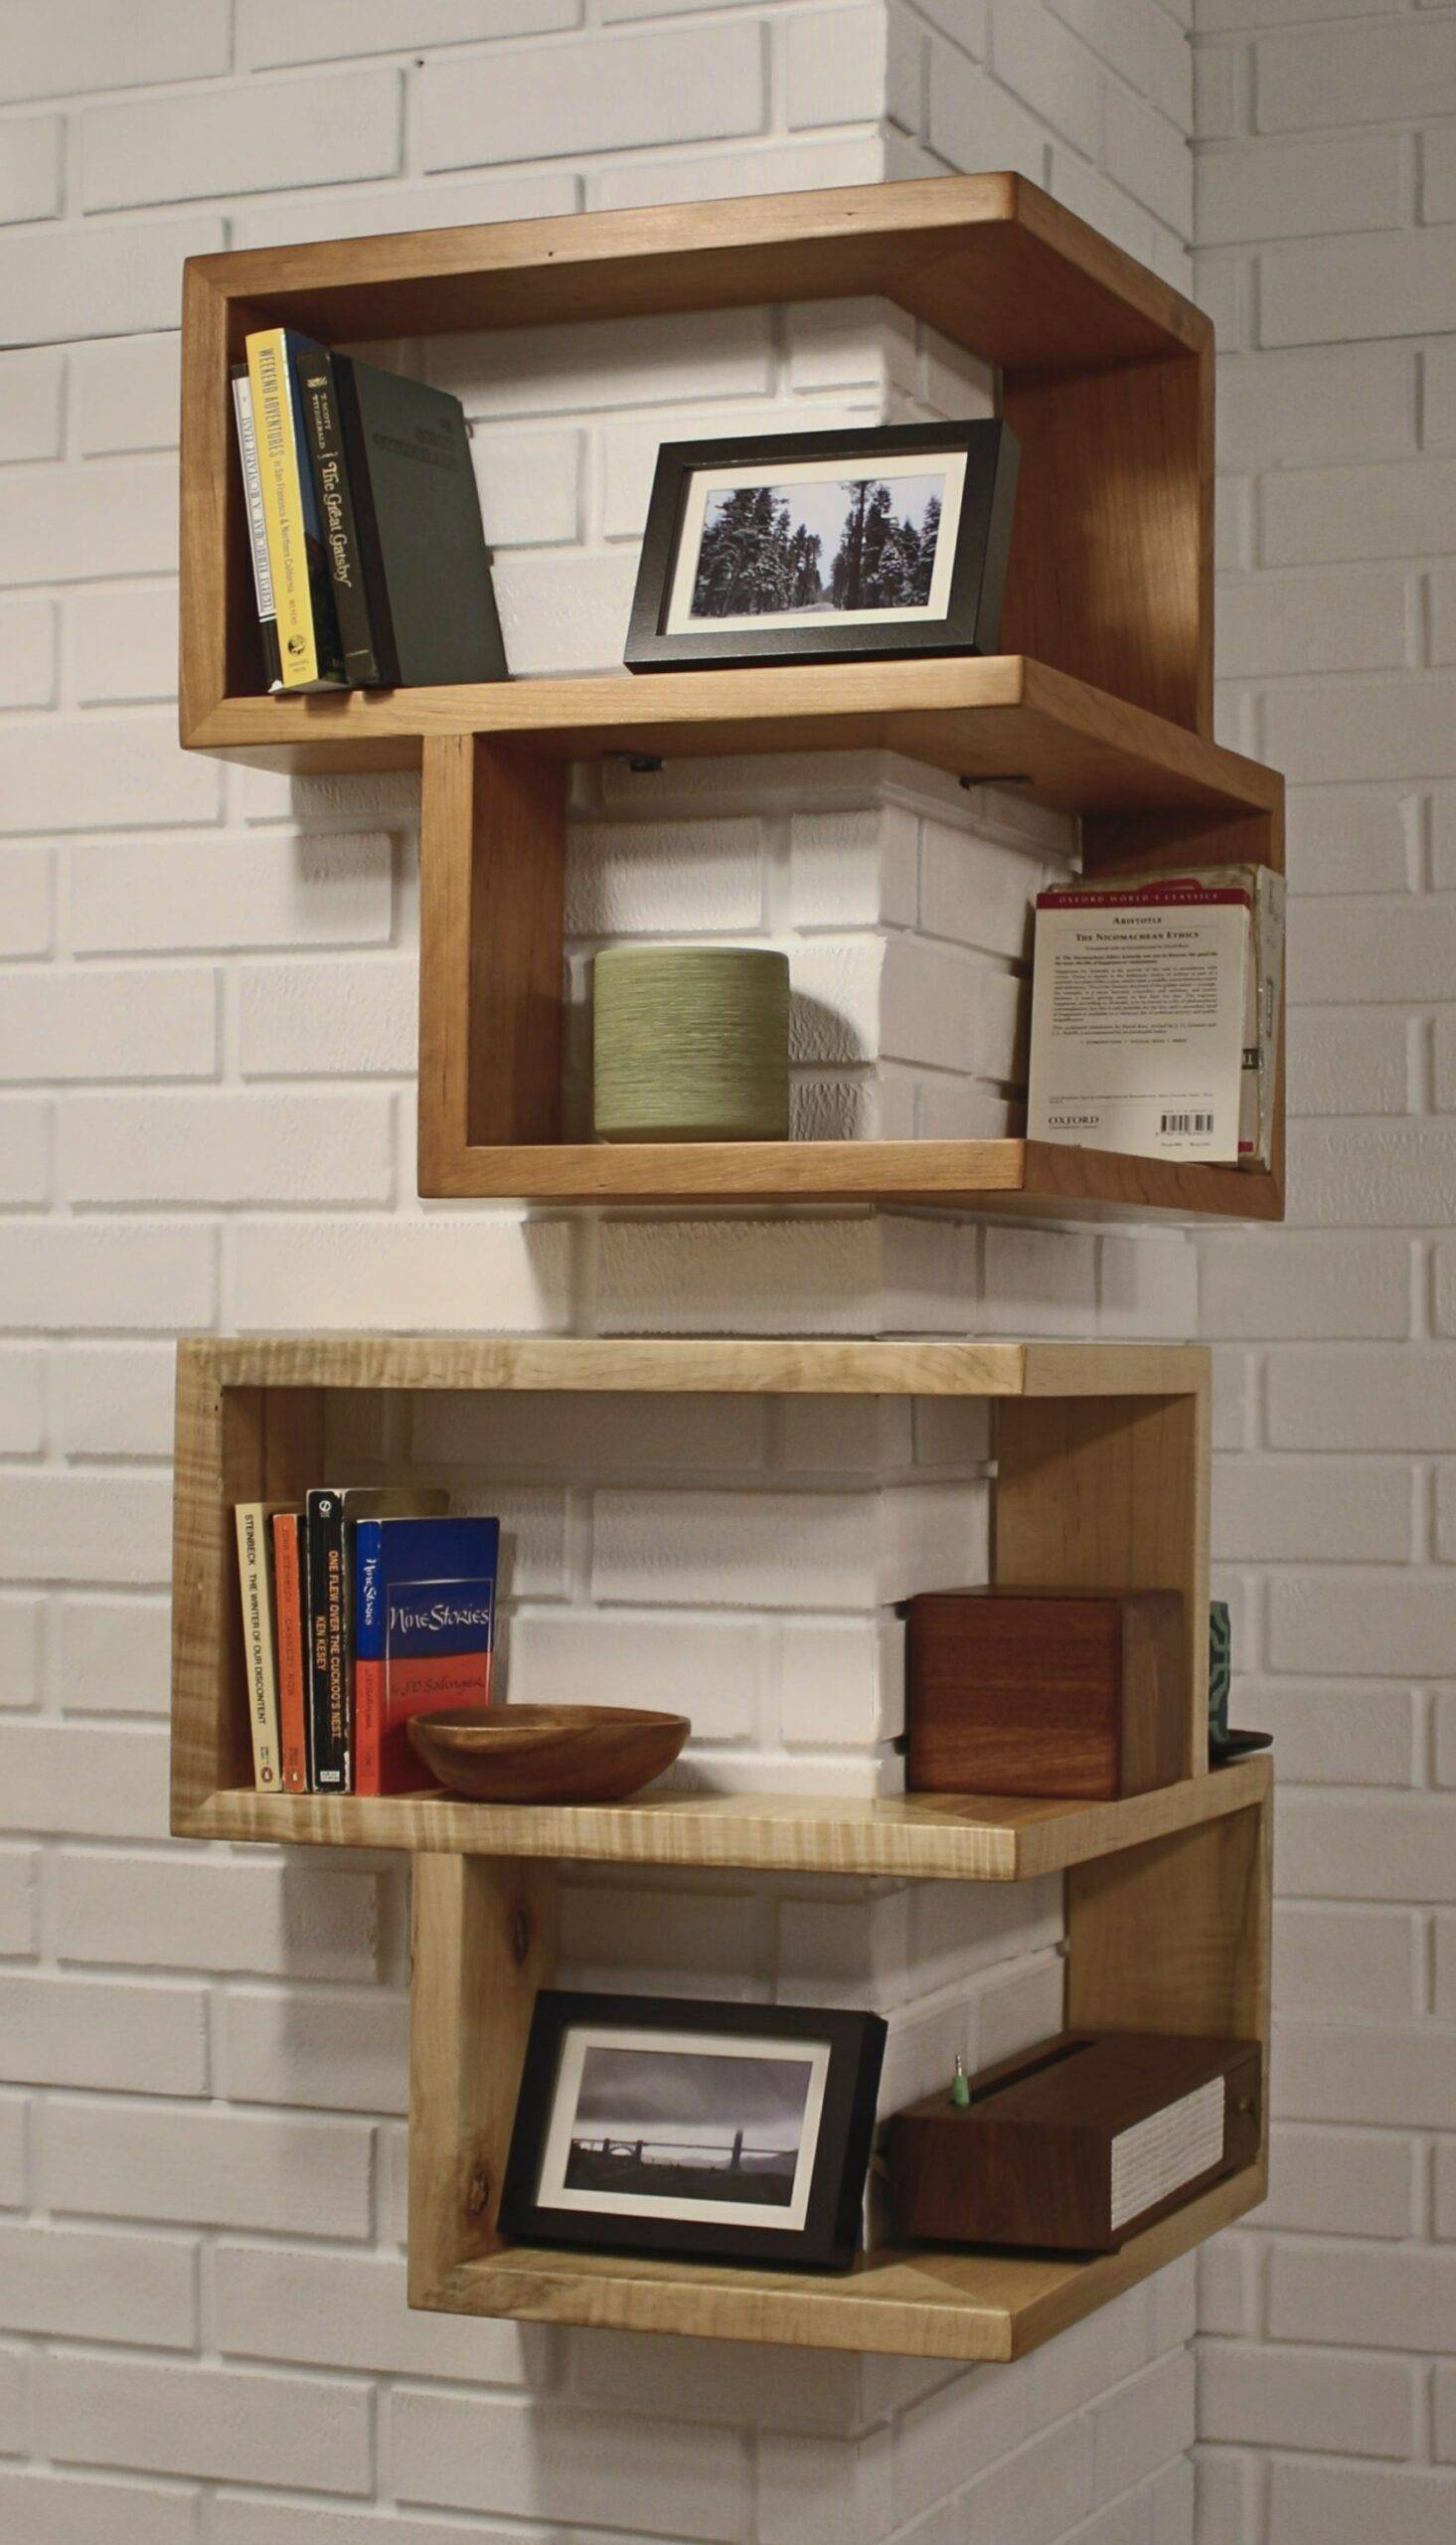 hanging shelf ideas 20 diy projects to make your home look classy of hanging shelf ideas scaled